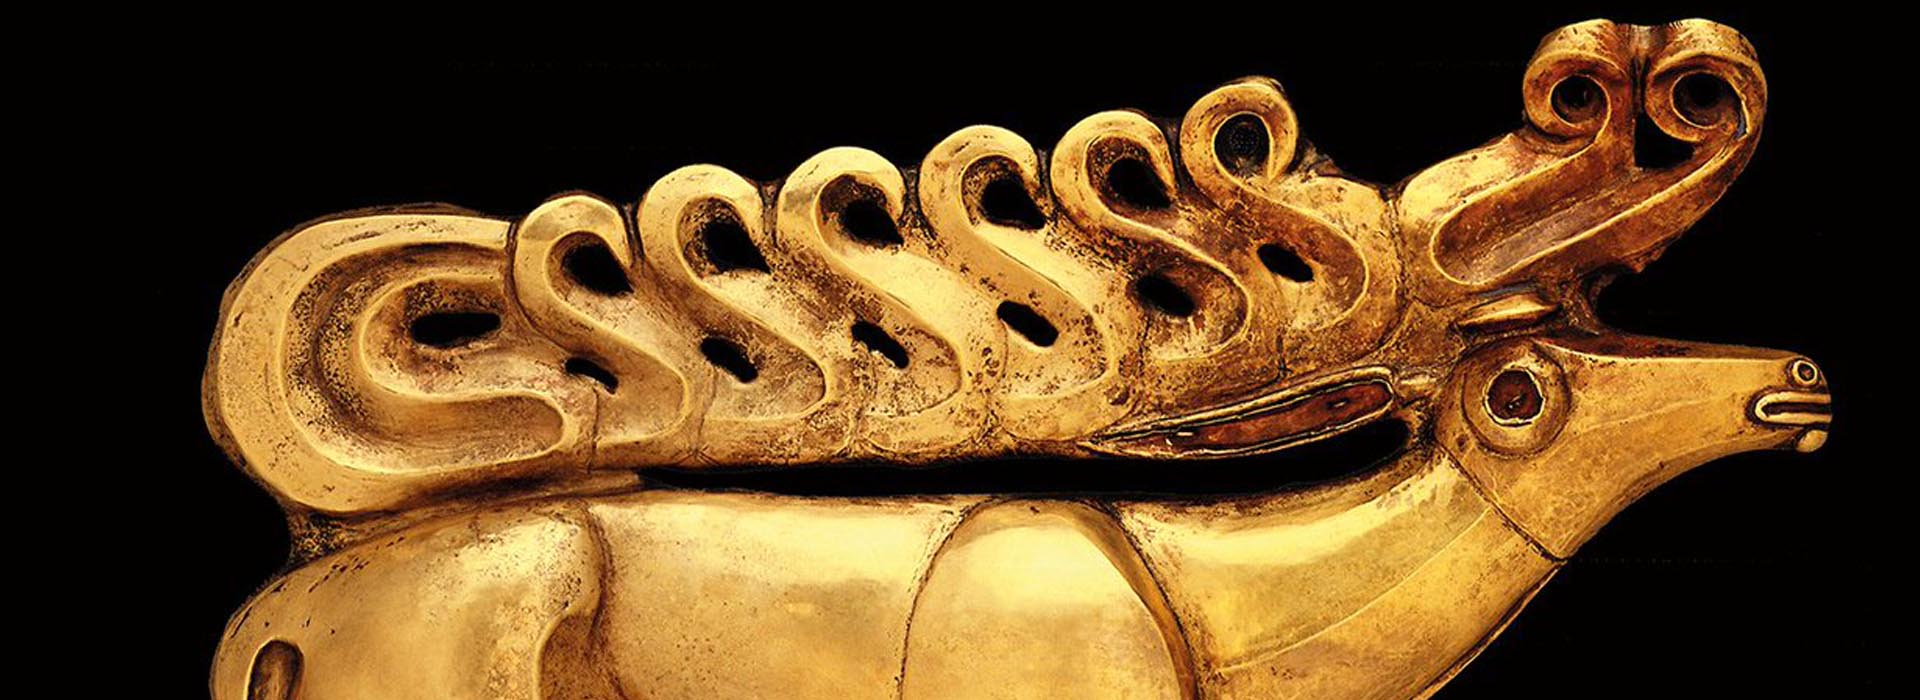 GOLD. THE MYSTERY OF THE SARMATIANS AND SHIITES